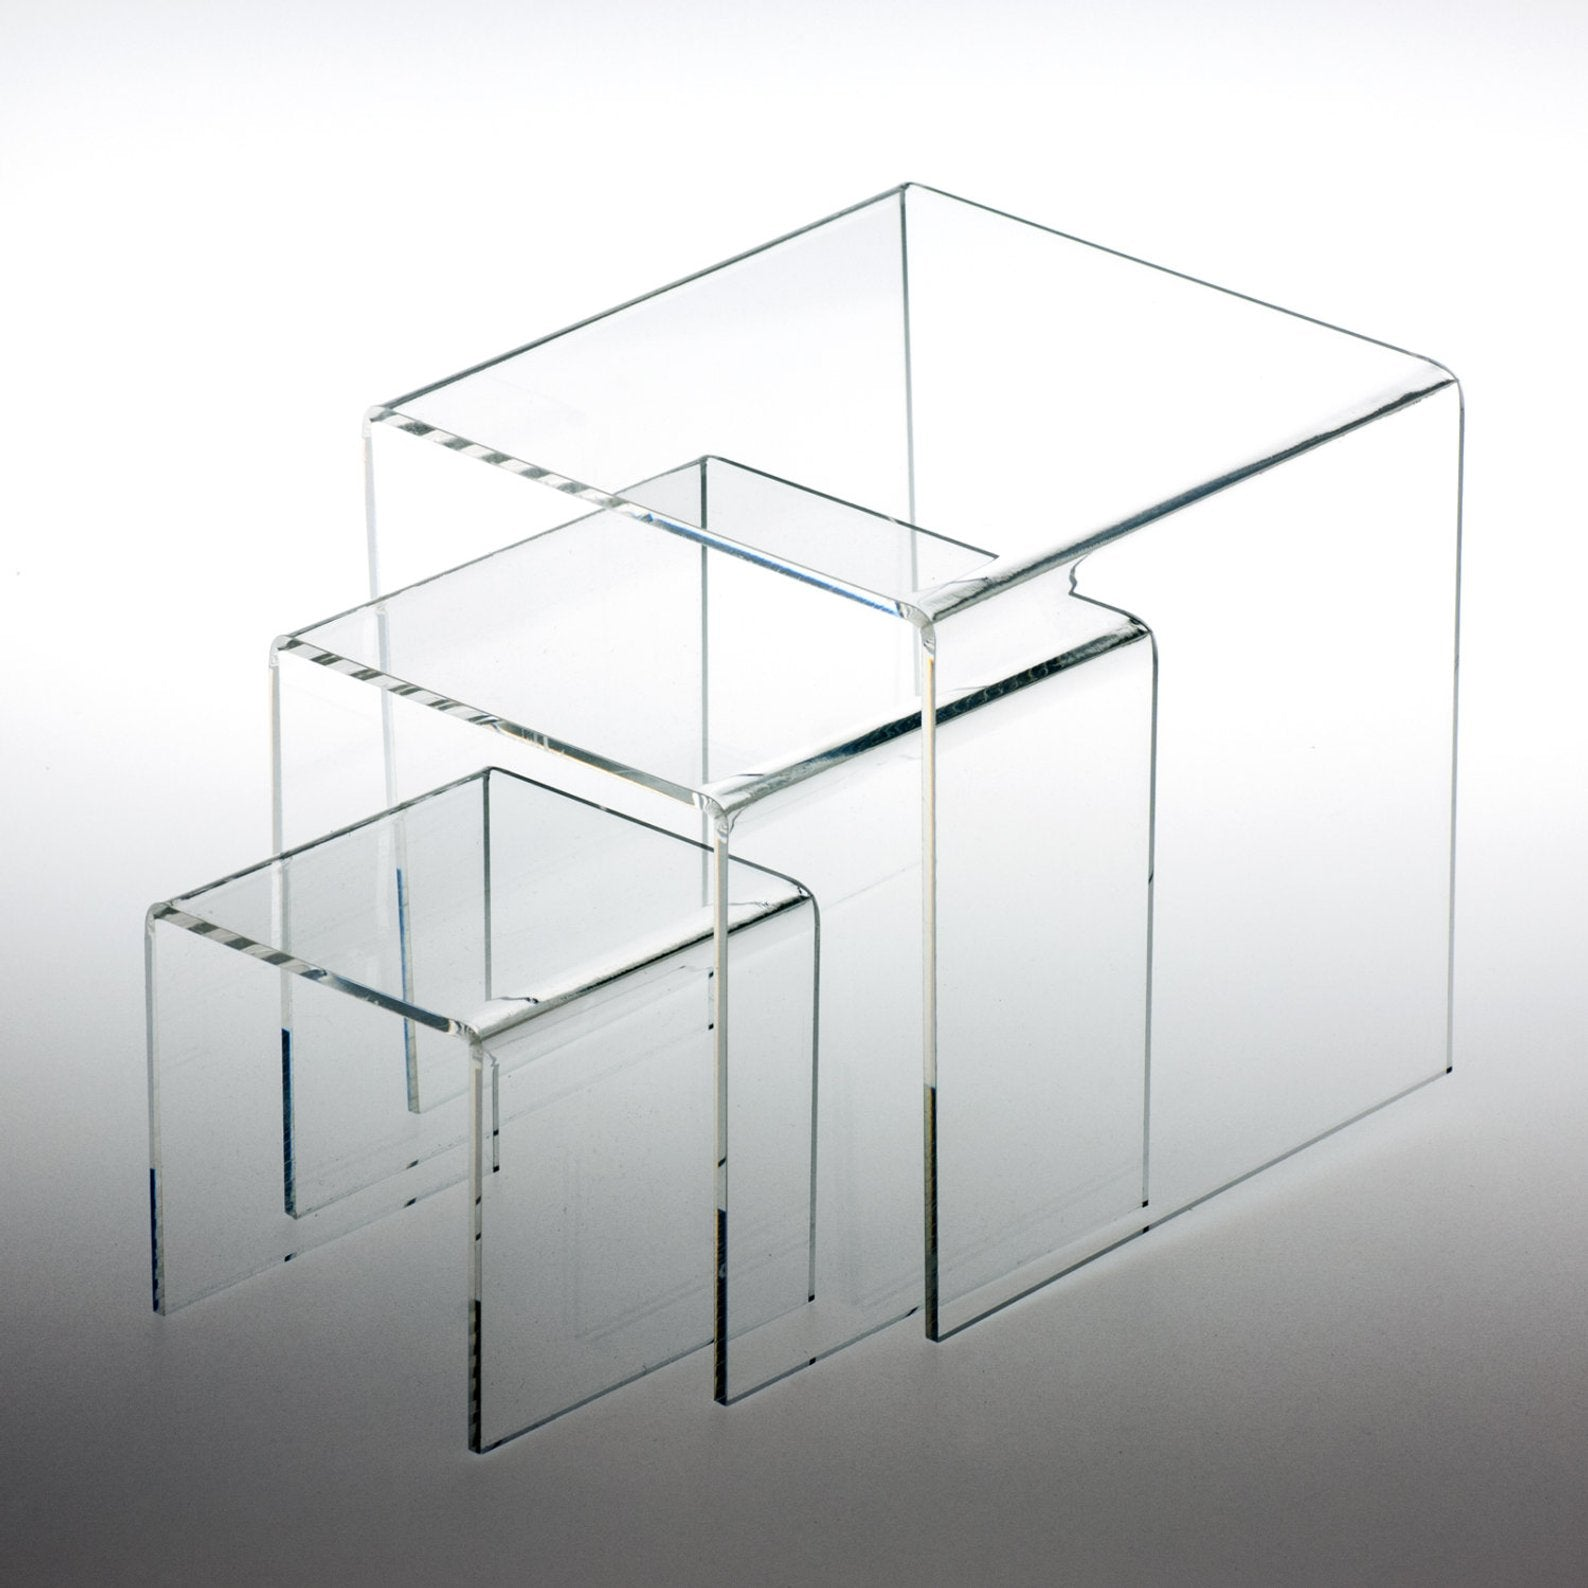 Set of Clear Acrylic Stands for Dessert Bar Decor